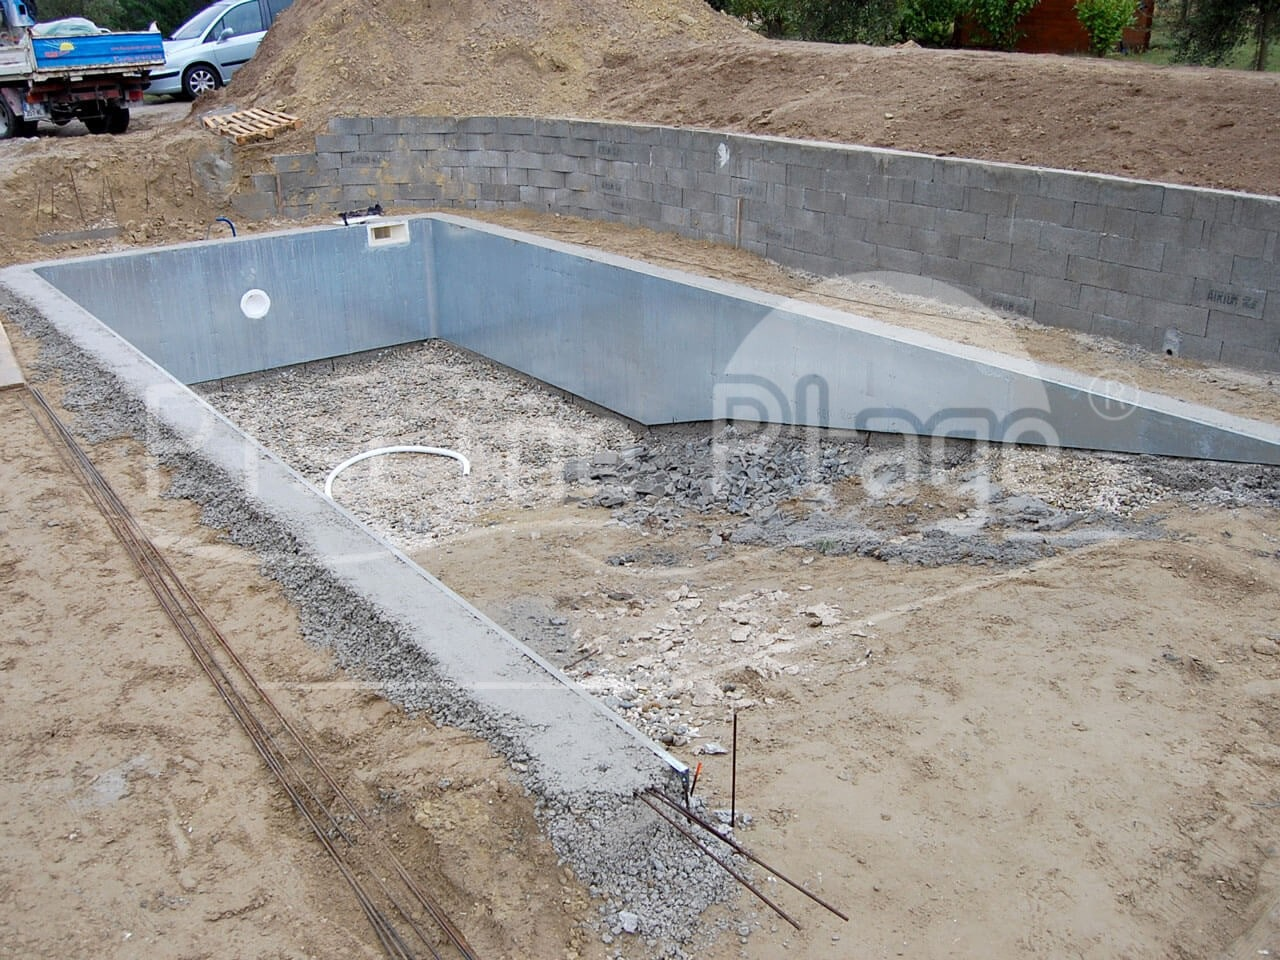 Notre technique de construction piscine plage for Construction de piscines